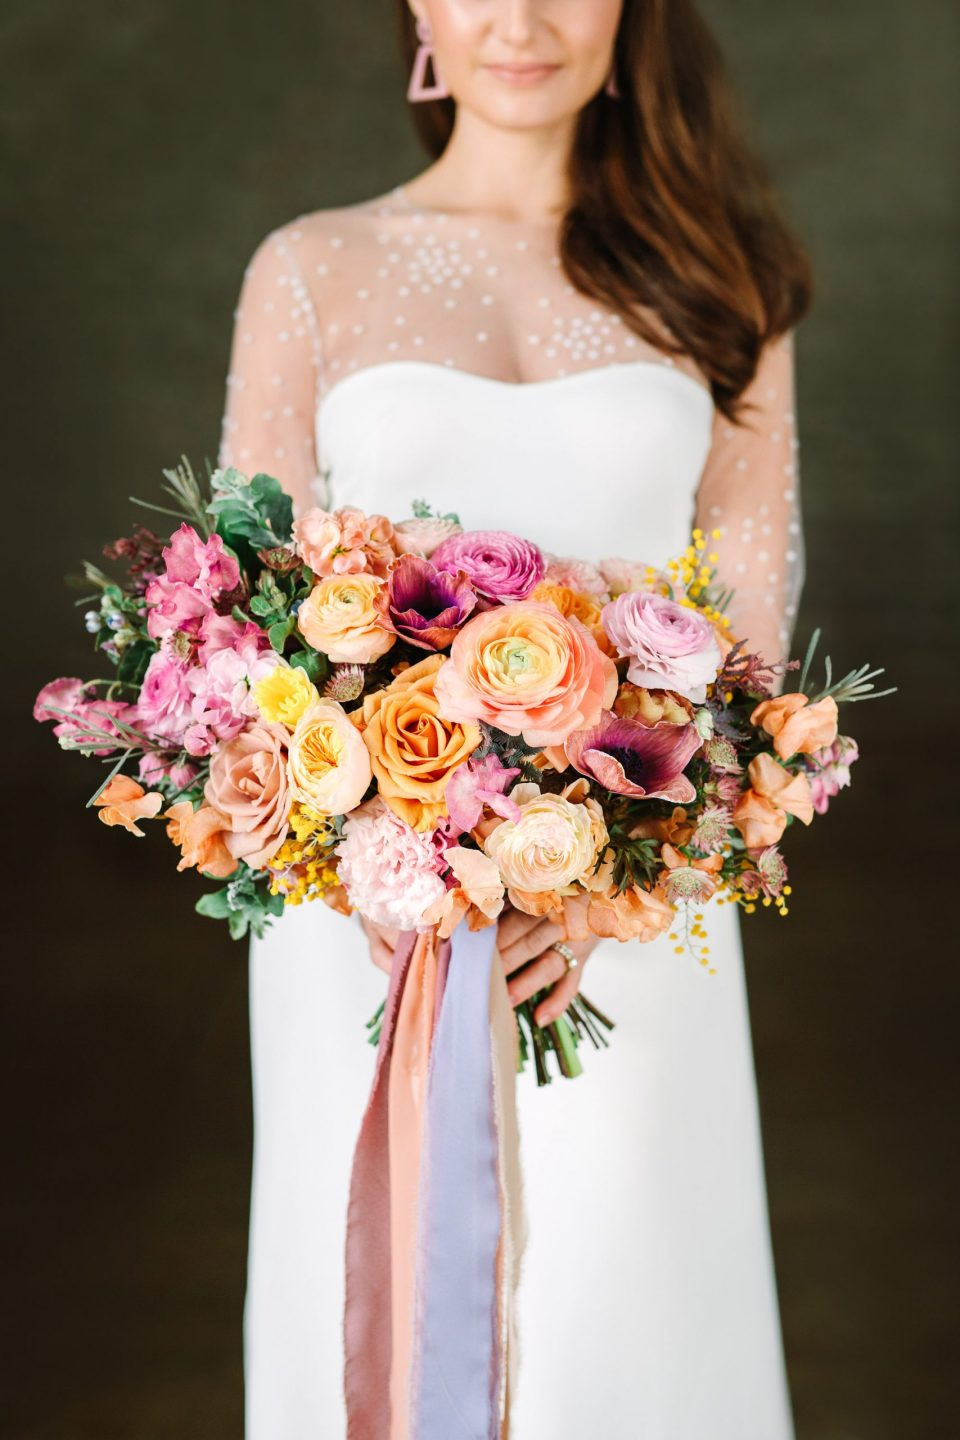 Bride with colorful bouquet by Mary Costa Photography